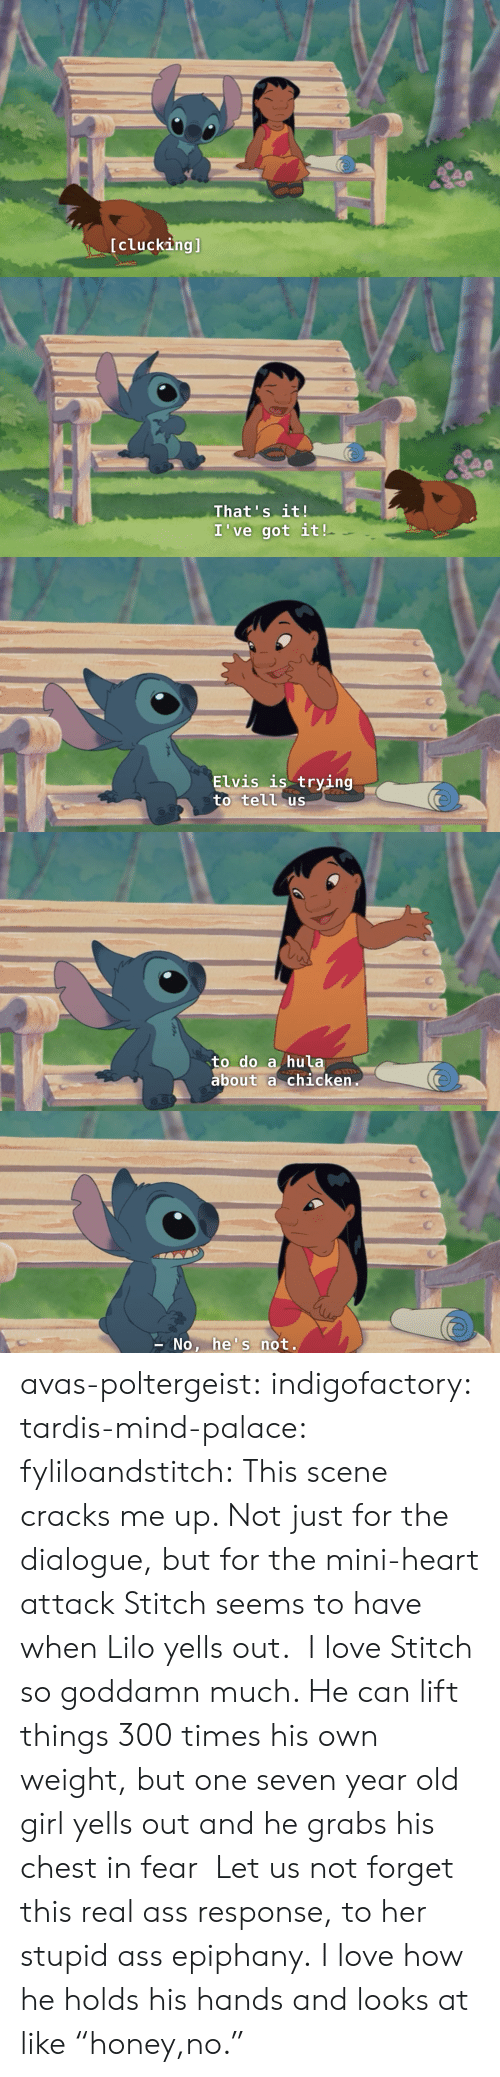 """Ass, Love, and Tumblr: [clucking]   That's it!  I've got it!   Elvis is trying  to tell us   to do a hula  about a chicken   No, he's not. avas-poltergeist:  indigofactory:  tardis-mind-palace:  fyliloandstitch:  This scene cracks me up. Not just for the dialogue, but for the mini-heart attack Stitch seems to have when Lilo yells out.  I love Stitch so goddamn much. He can lift things 300 times his own weight, but one seven year old girl yells out and he grabs his chest in fear  Let us not forget this real ass response, to her stupid ass epiphany.  I love how he holds his hands and looks at like """"honey,no."""""""